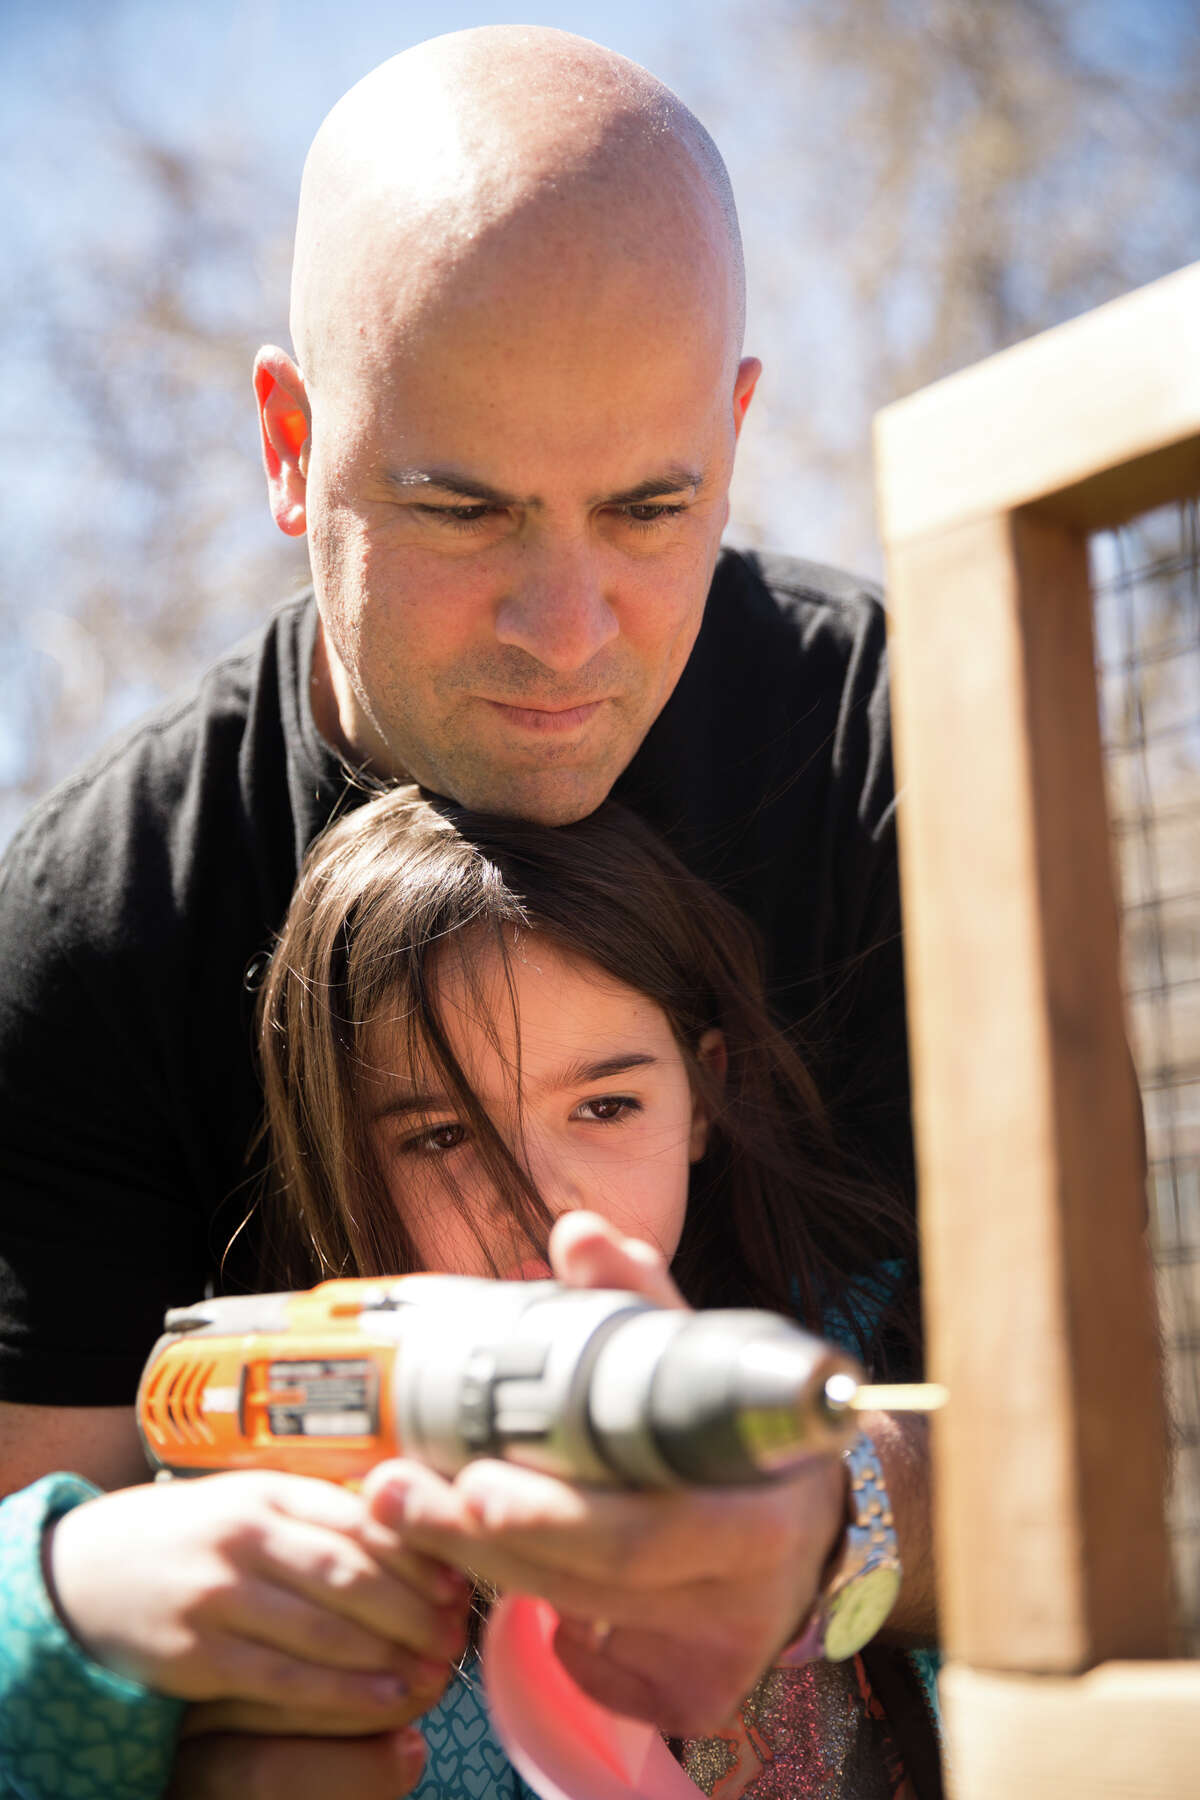 Ian Chodos helps his daughter Sienna drill pilot holes in the new elevated garden at the Temple Sholom Selma Maisel Nursery School in Greenwich, Conn. on Sunday, April 22, 2018. The 8' x 8' raised garden bed will serve as a sensory-rich space to promote student inquiry, dialogue and critical thinking.